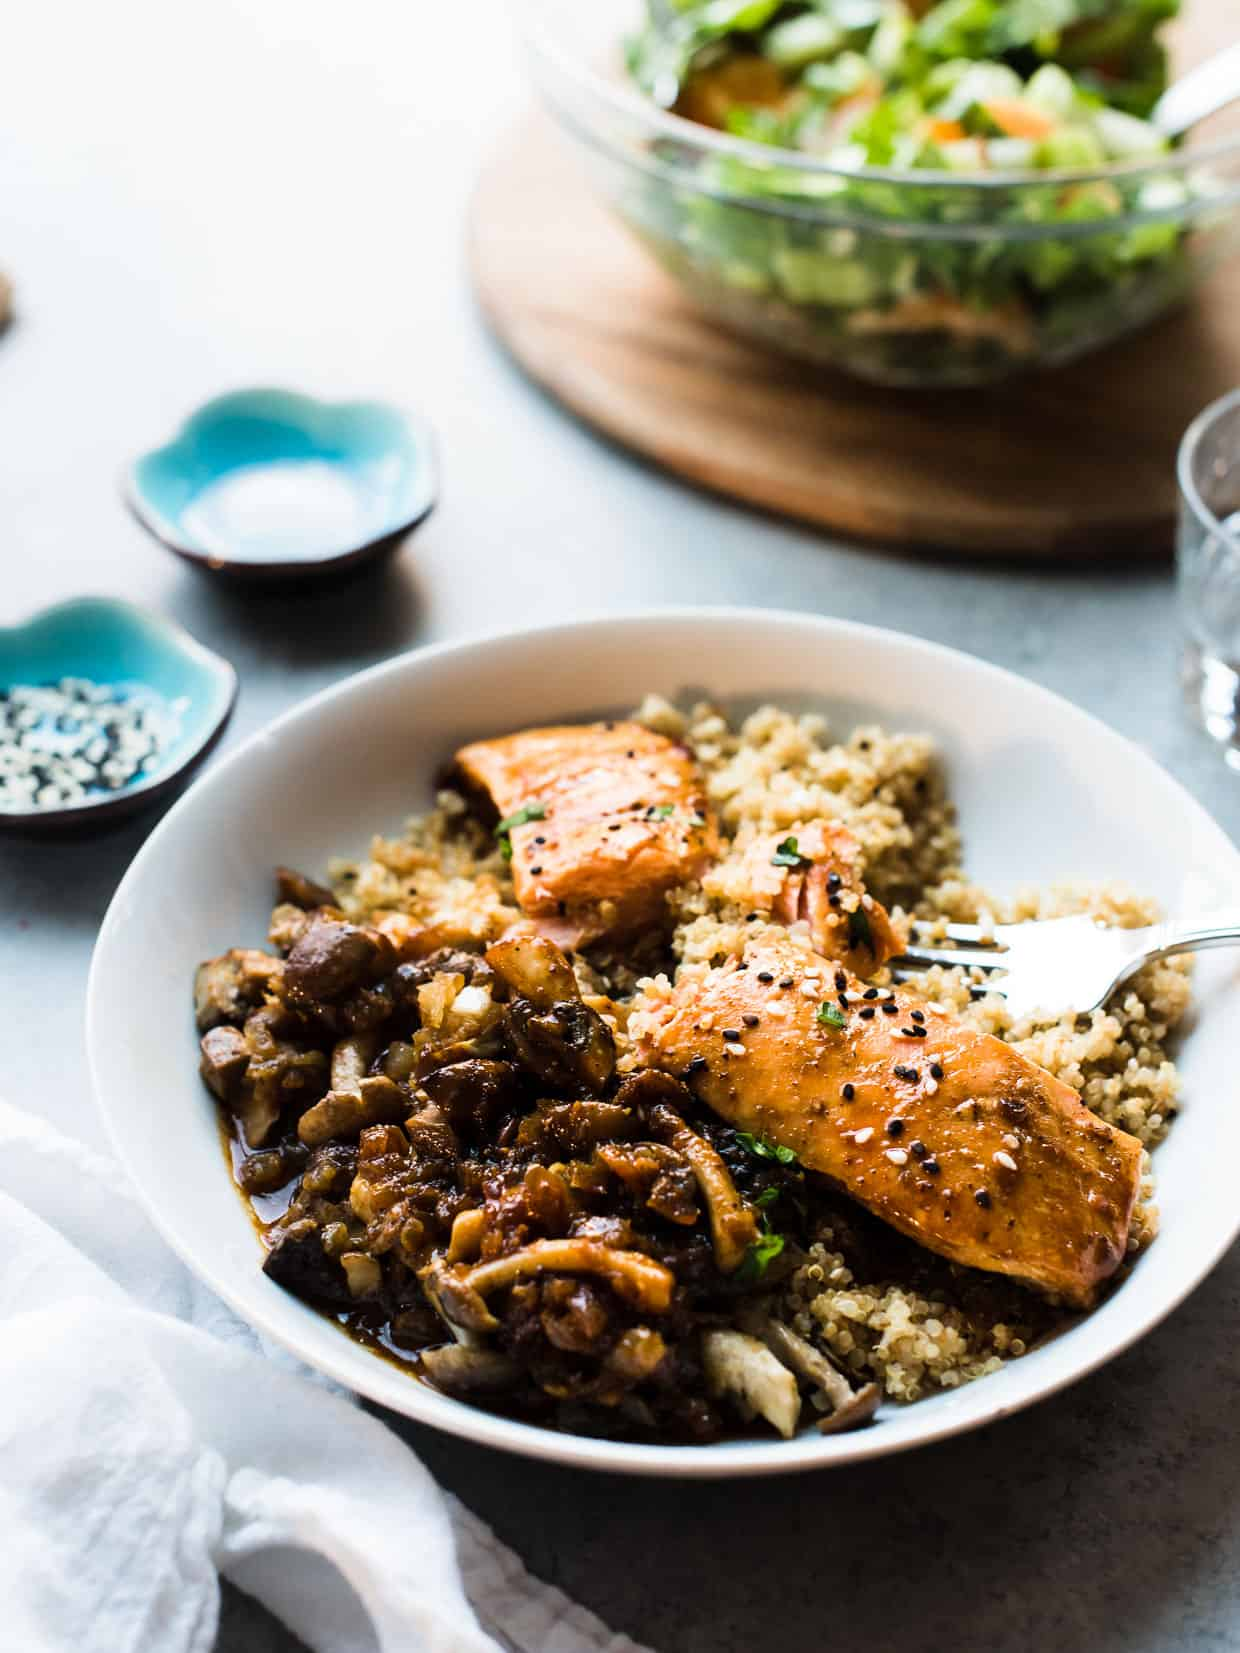 pan roasted salmon on bed of quinoa with mushrooms